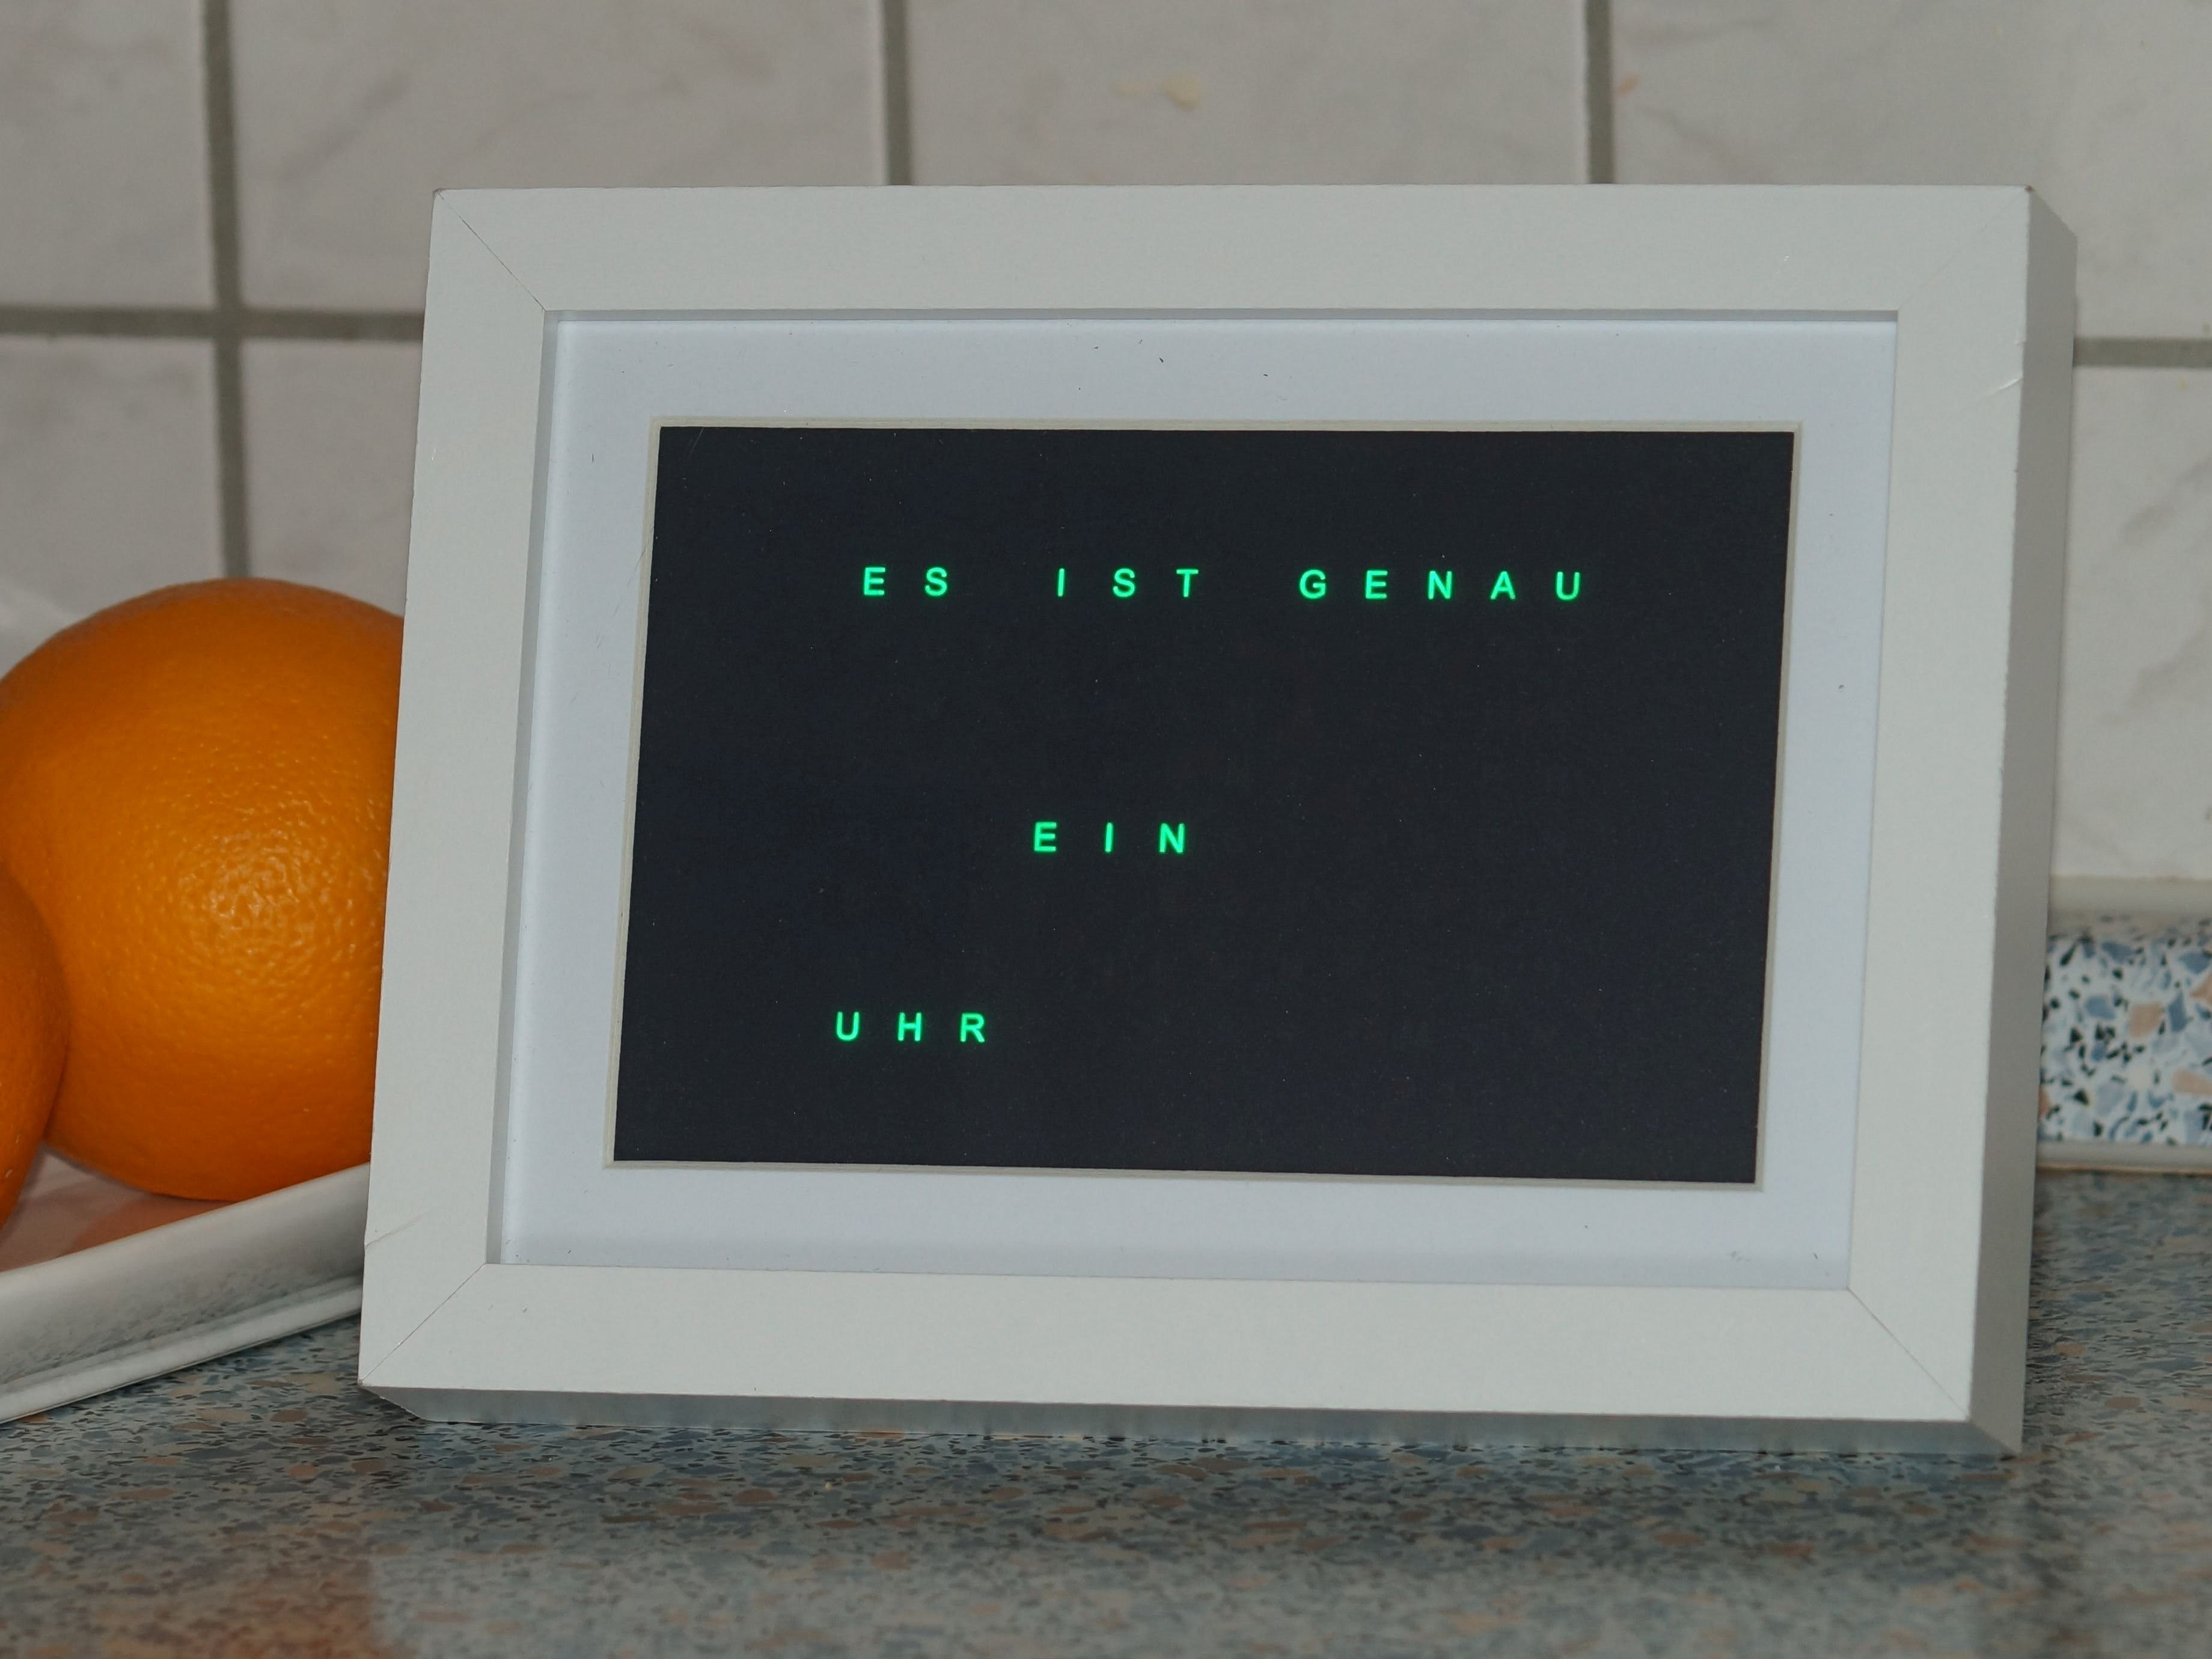 CyWordClock - Time Goes Slowly! (PSoC 4 BLE)